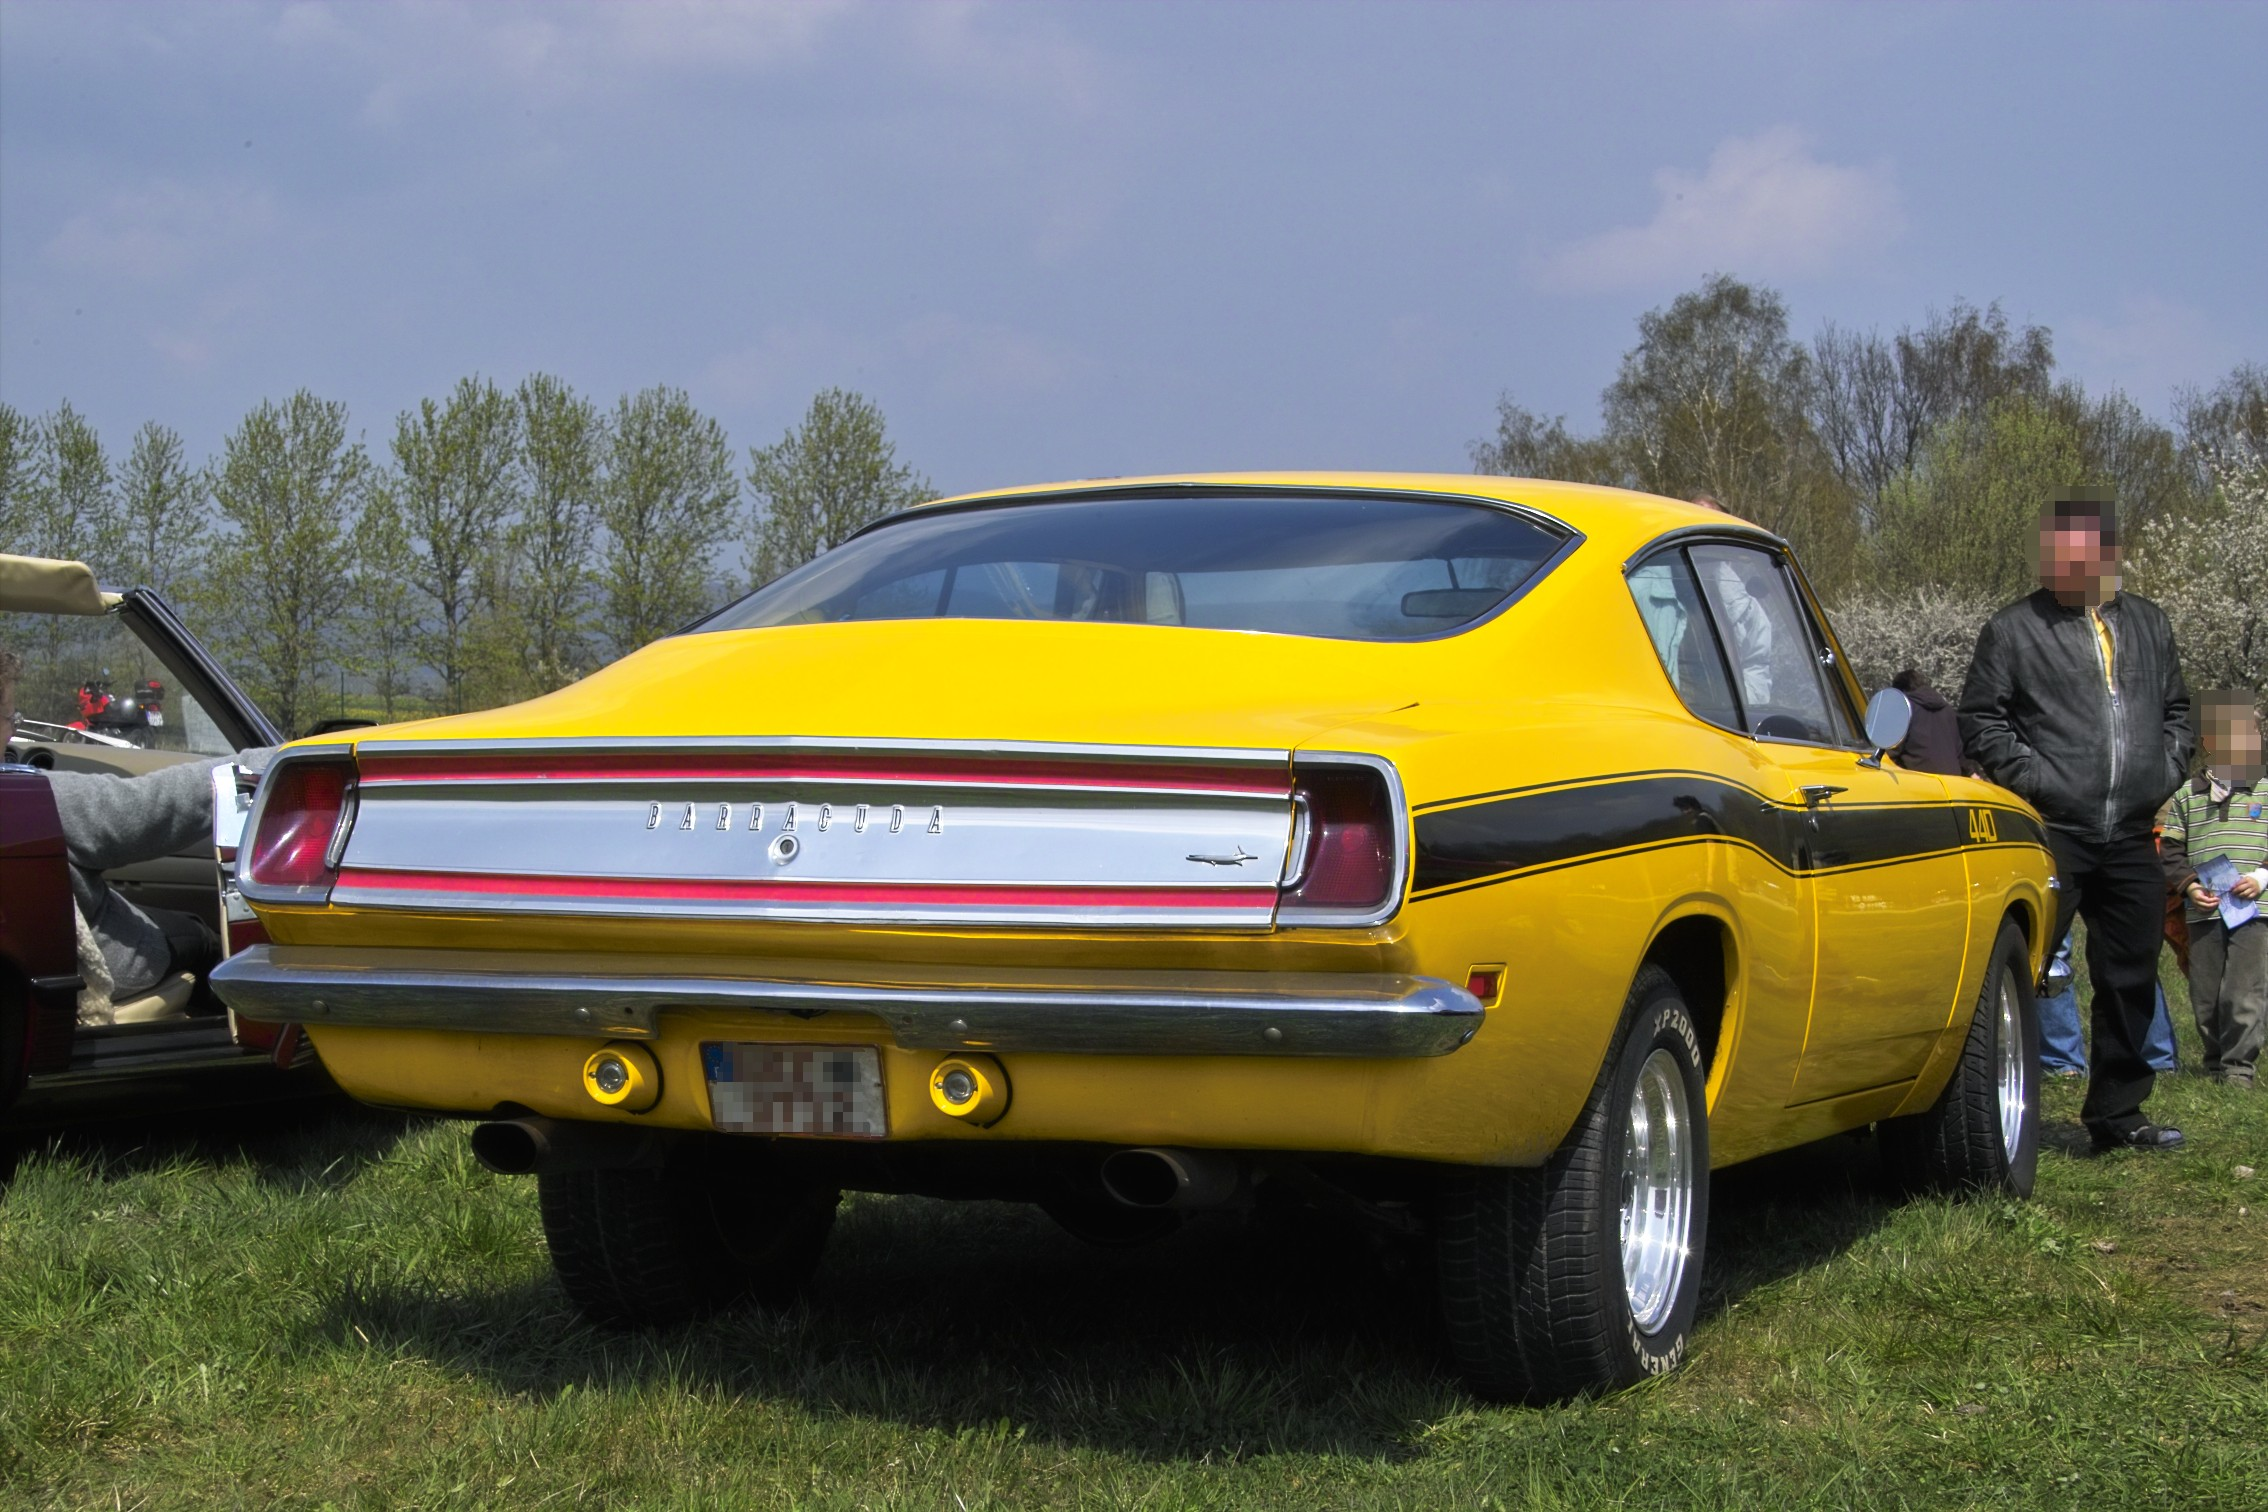 File:Plymouth barracuda 440 1969 rear.jpg